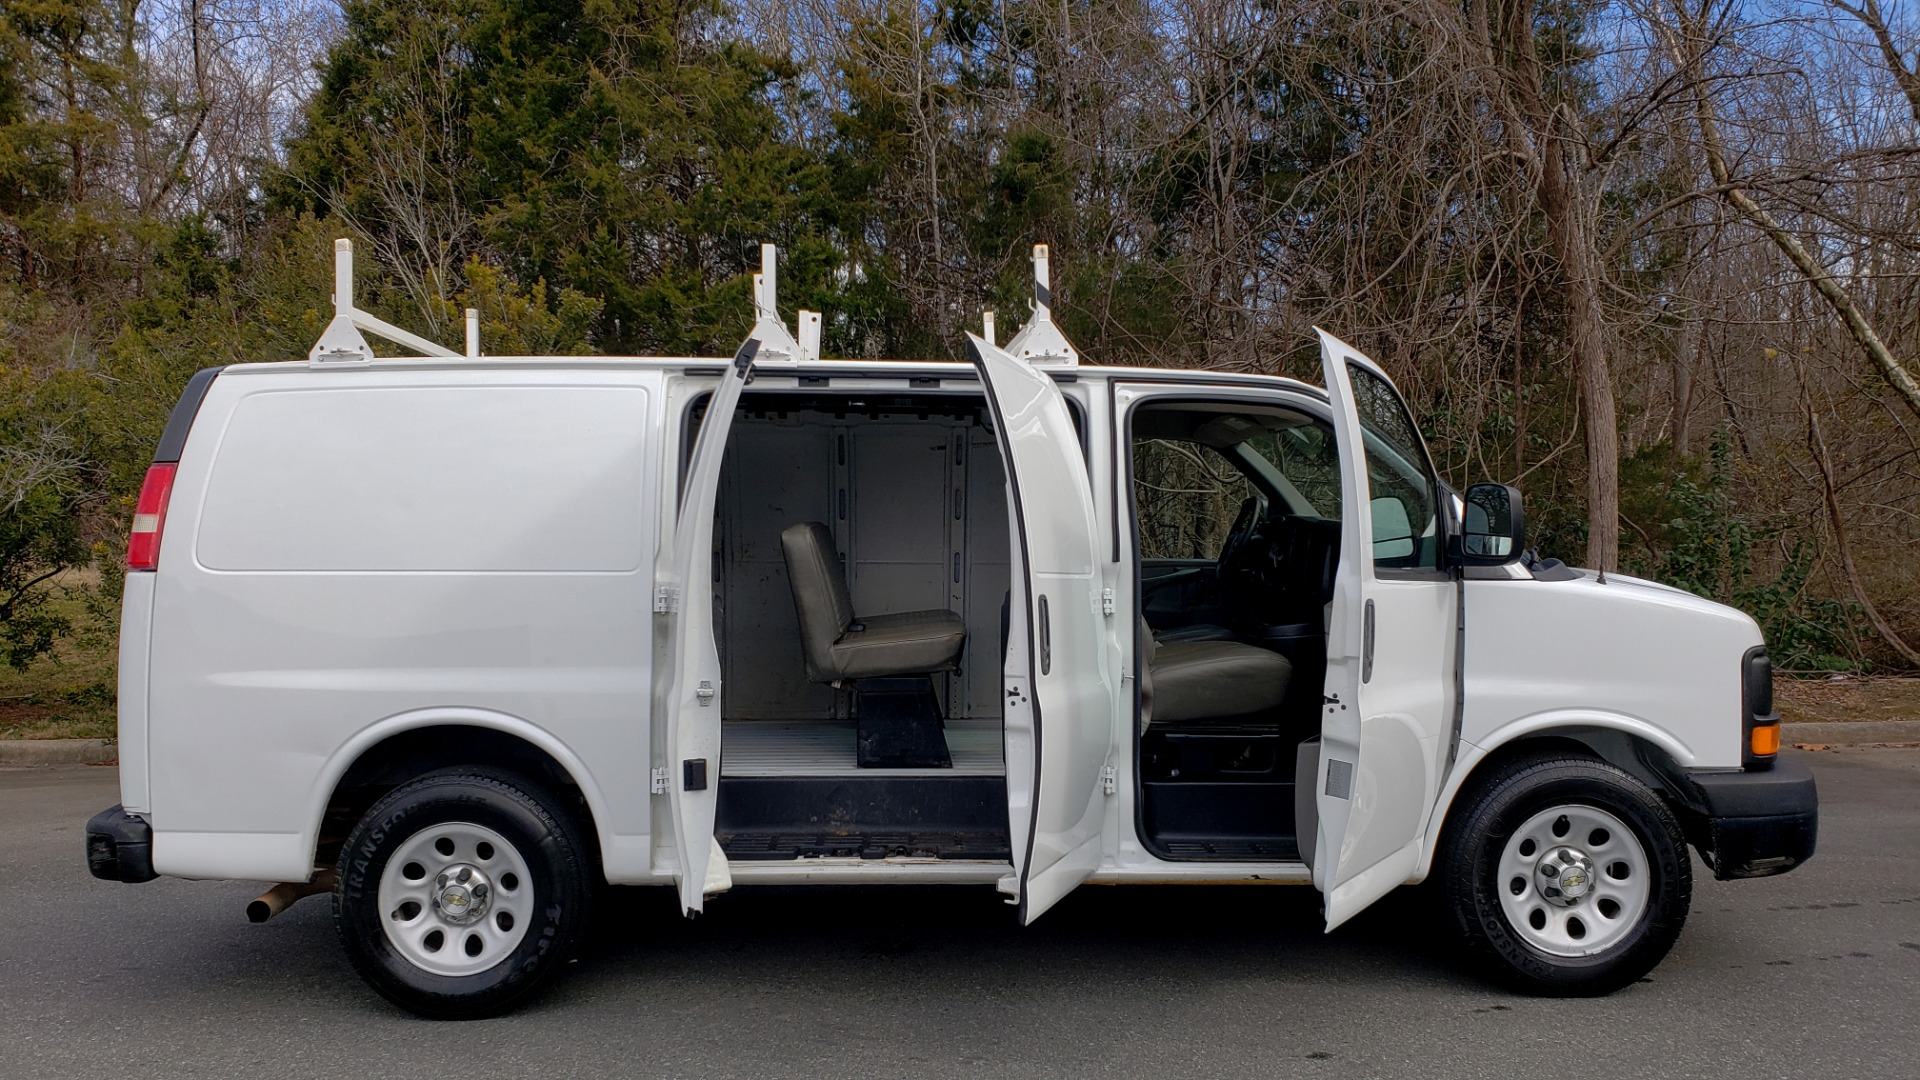 Used 2012 Chevrolet EXPRESS CARGO VAN 1500 / 135 WB / 4.3L V6 / 4-SPD AUTO / ROOF RACK for sale $10,995 at Formula Imports in Charlotte NC 28227 8